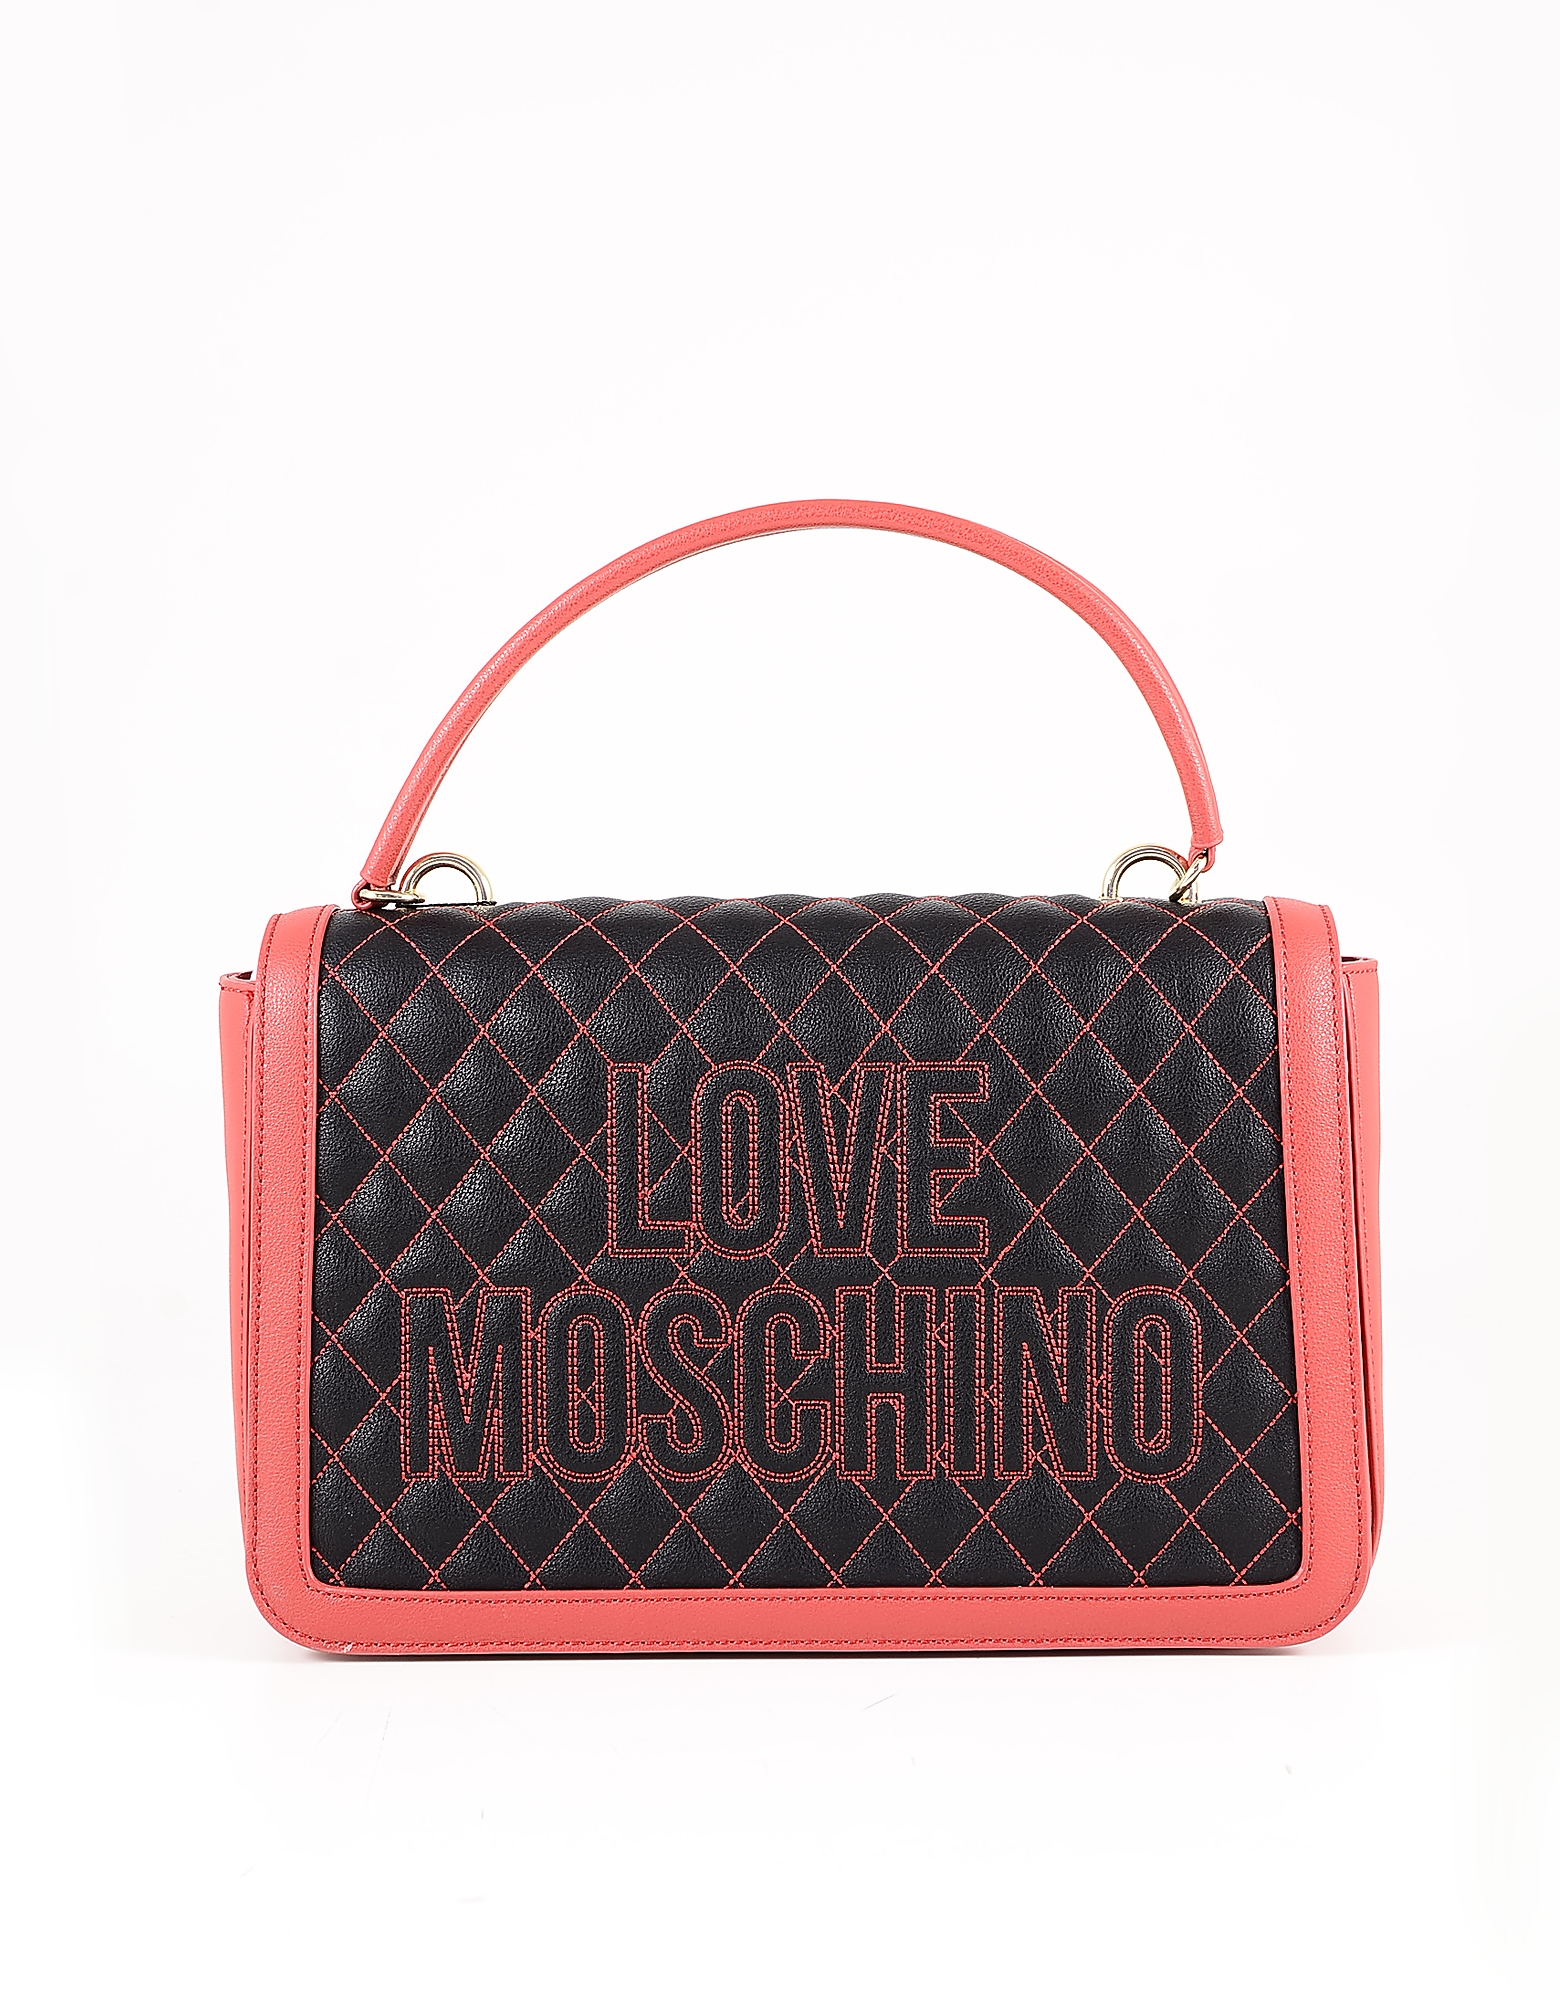 Love Moschino Black & Red Quilted Eco Leather Top-handle Bag